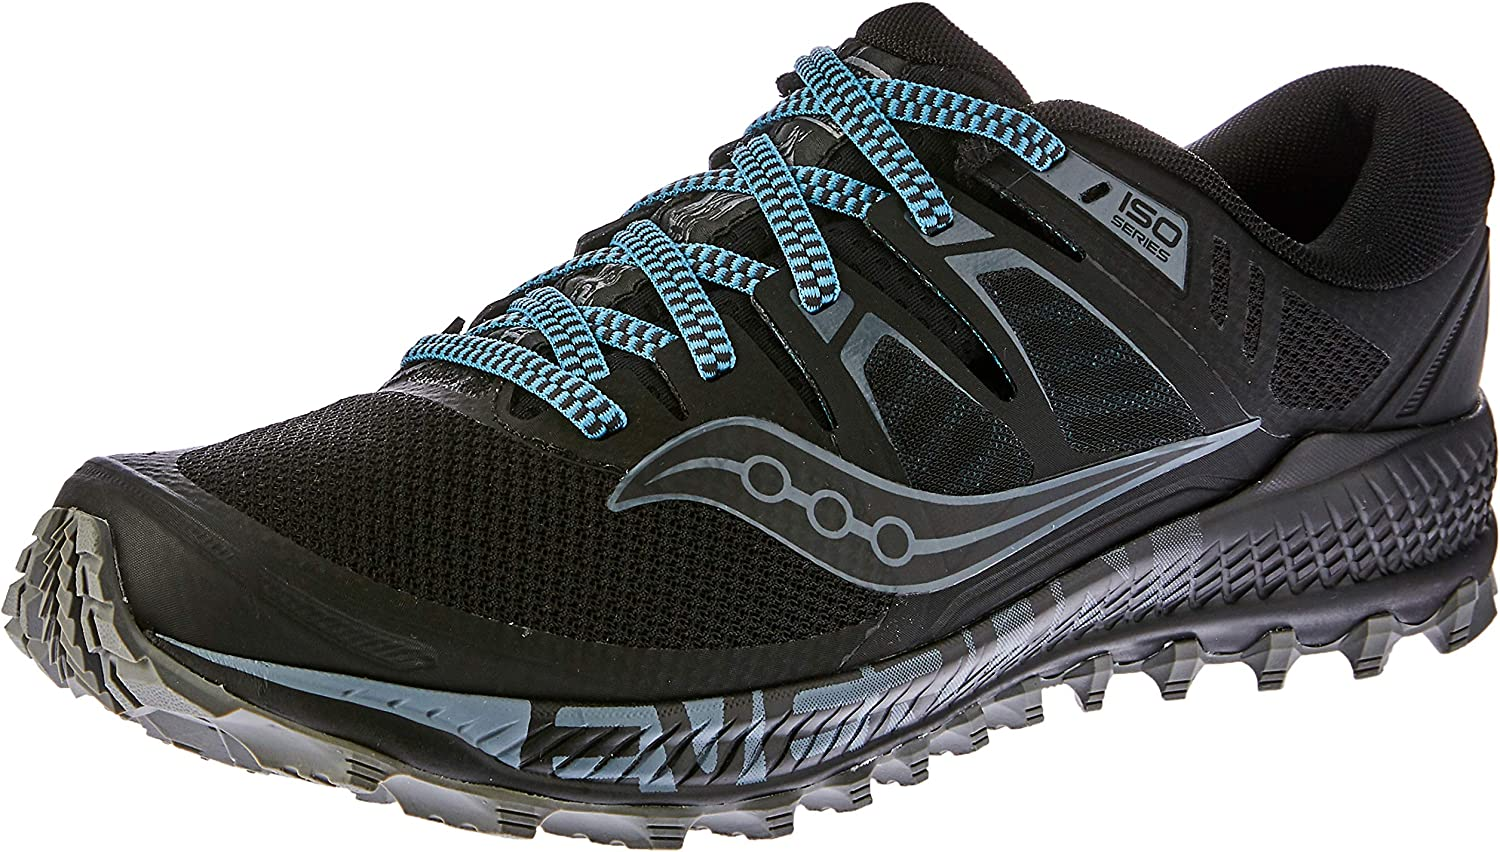 Saucony Men's S20483-2 Trail Running Shoe